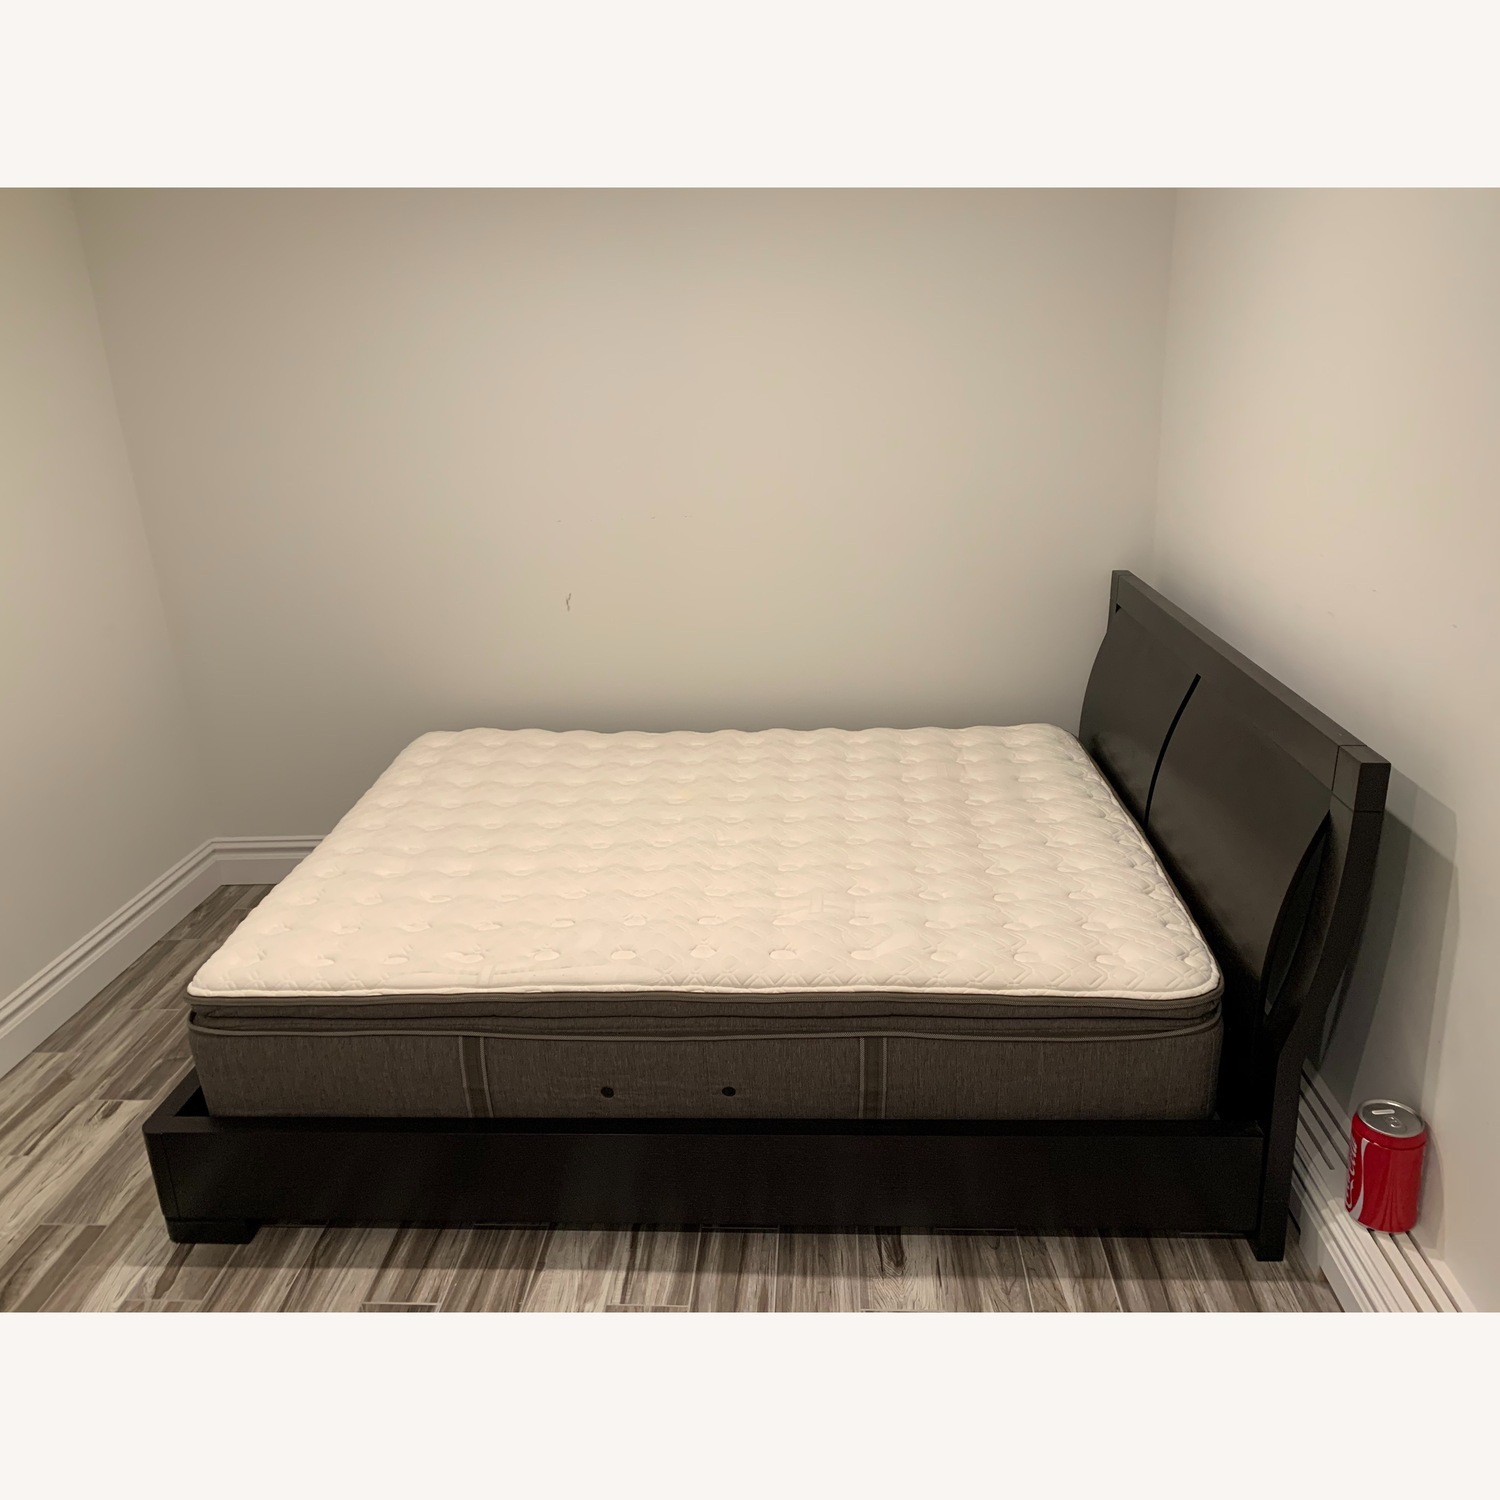 Stearns & Foster King Bed